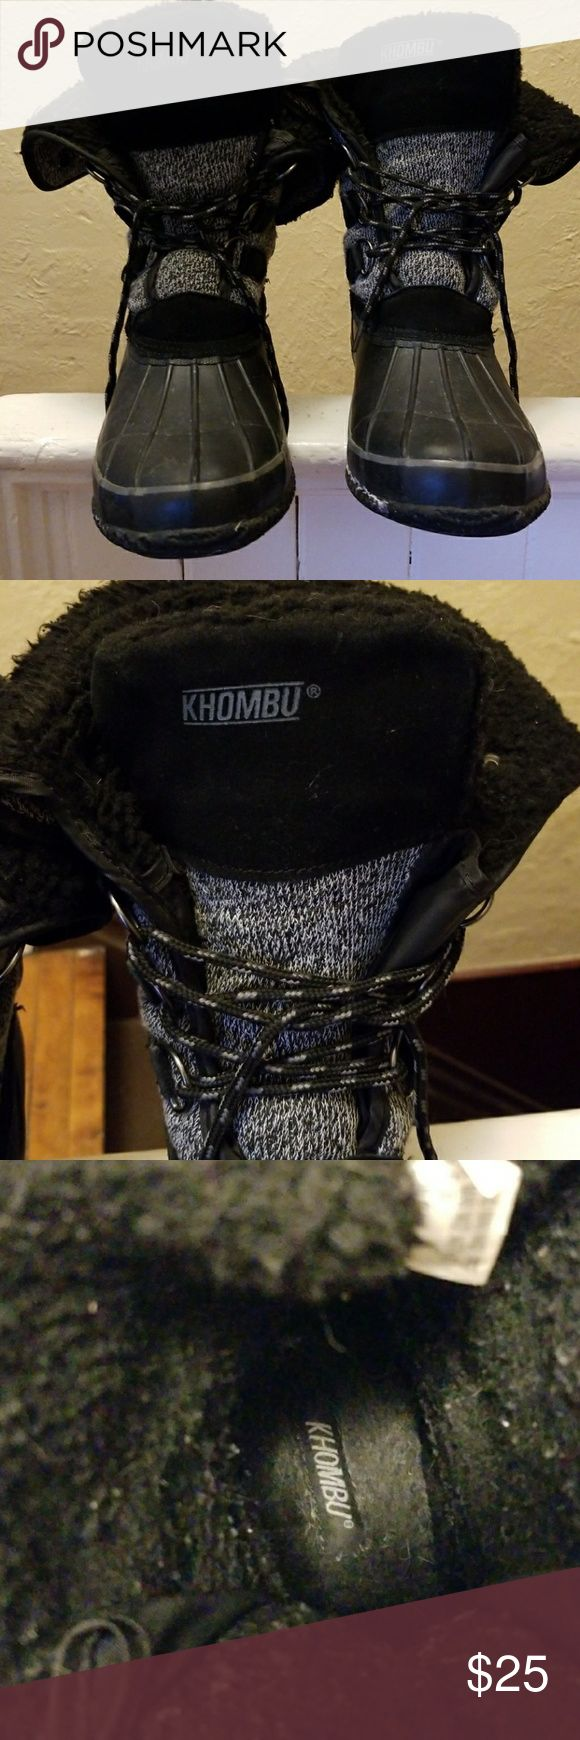 Khombu Winter Boots Khombu Boots that have rubber bottoms. Three eyelets for laces and the top can be folded over or pulled up! Khombu Shoes Winter & Rain Boots